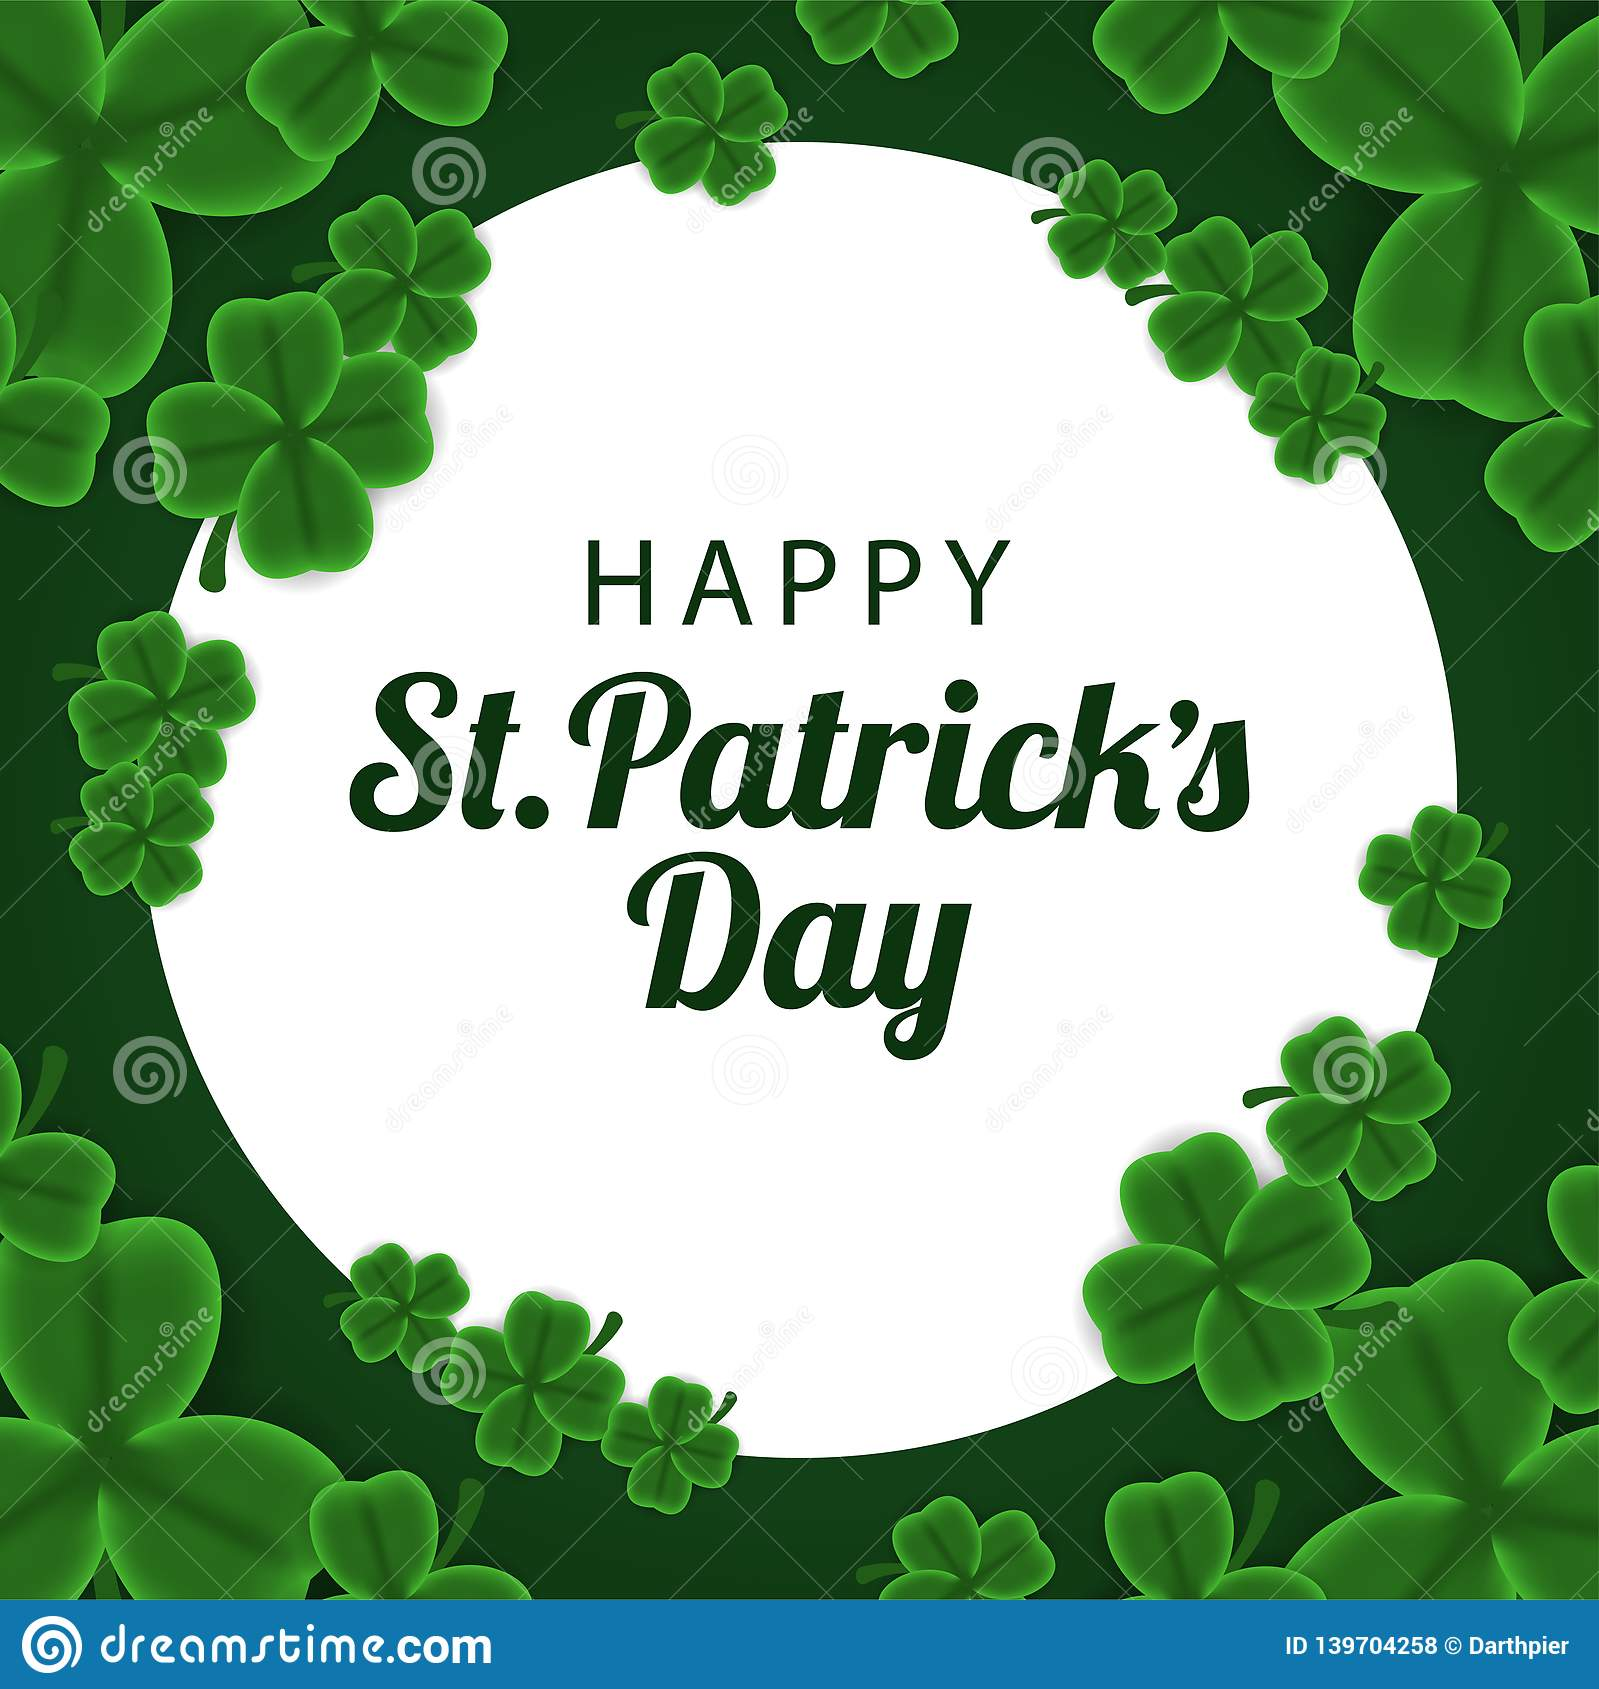 St patrick day banner template with illustration of shamrock clover leaves